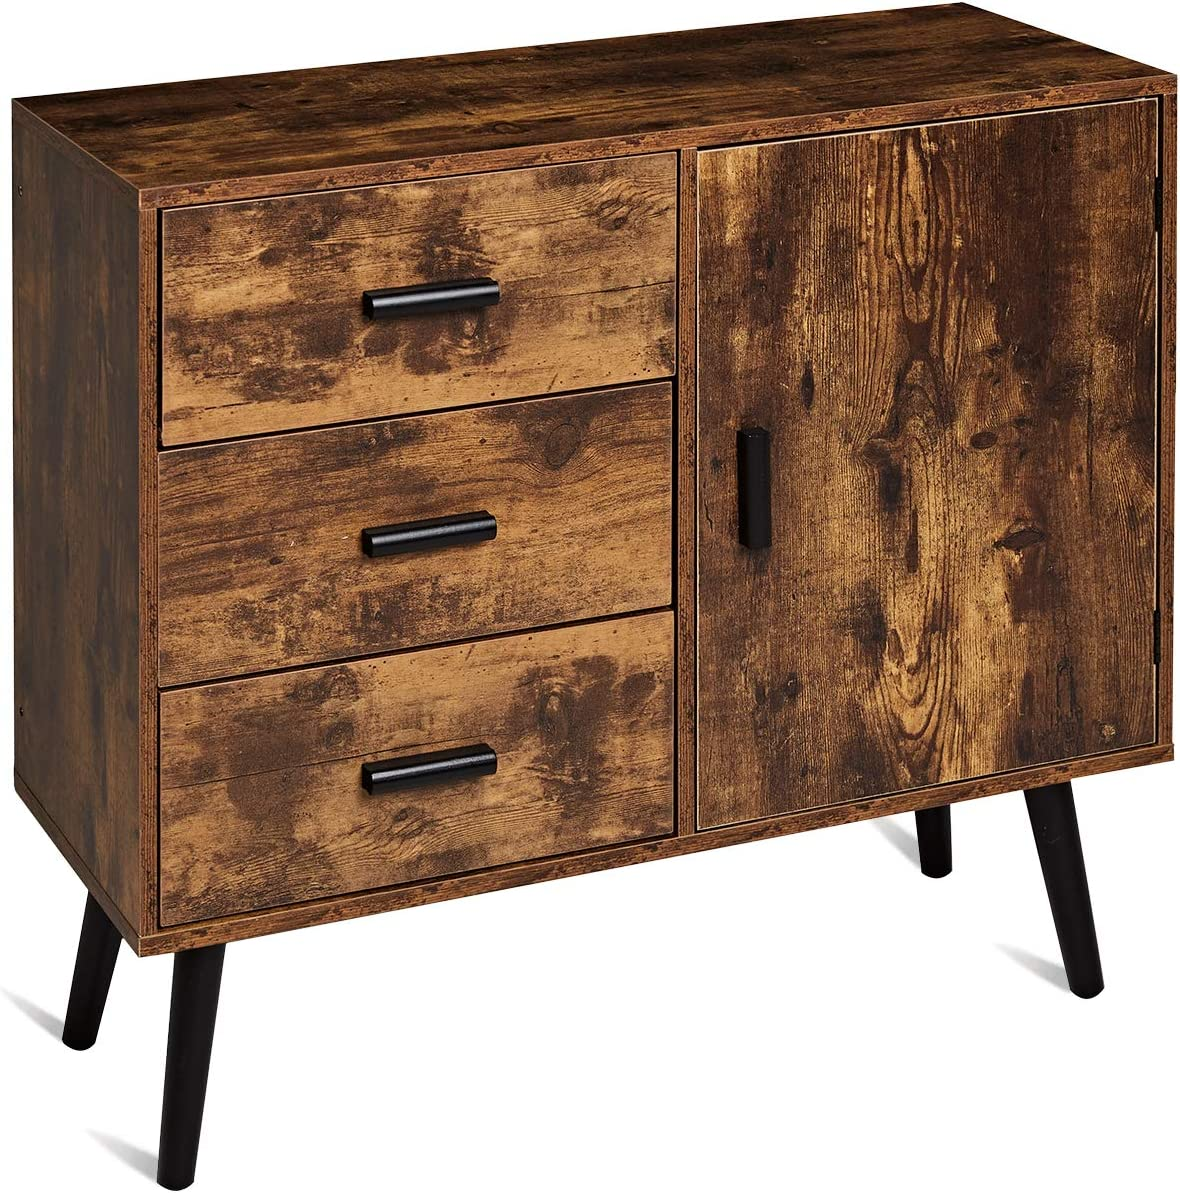 TianLang Retro Industrial Storage Cabinet, Cupboard with 3 Large Drawers & 1 Side Cabinet,Multifunctional Cabinet for Living Room,Kitchen,Bathroom,Stable Wooden Legs,Retro Brown LJSC003F